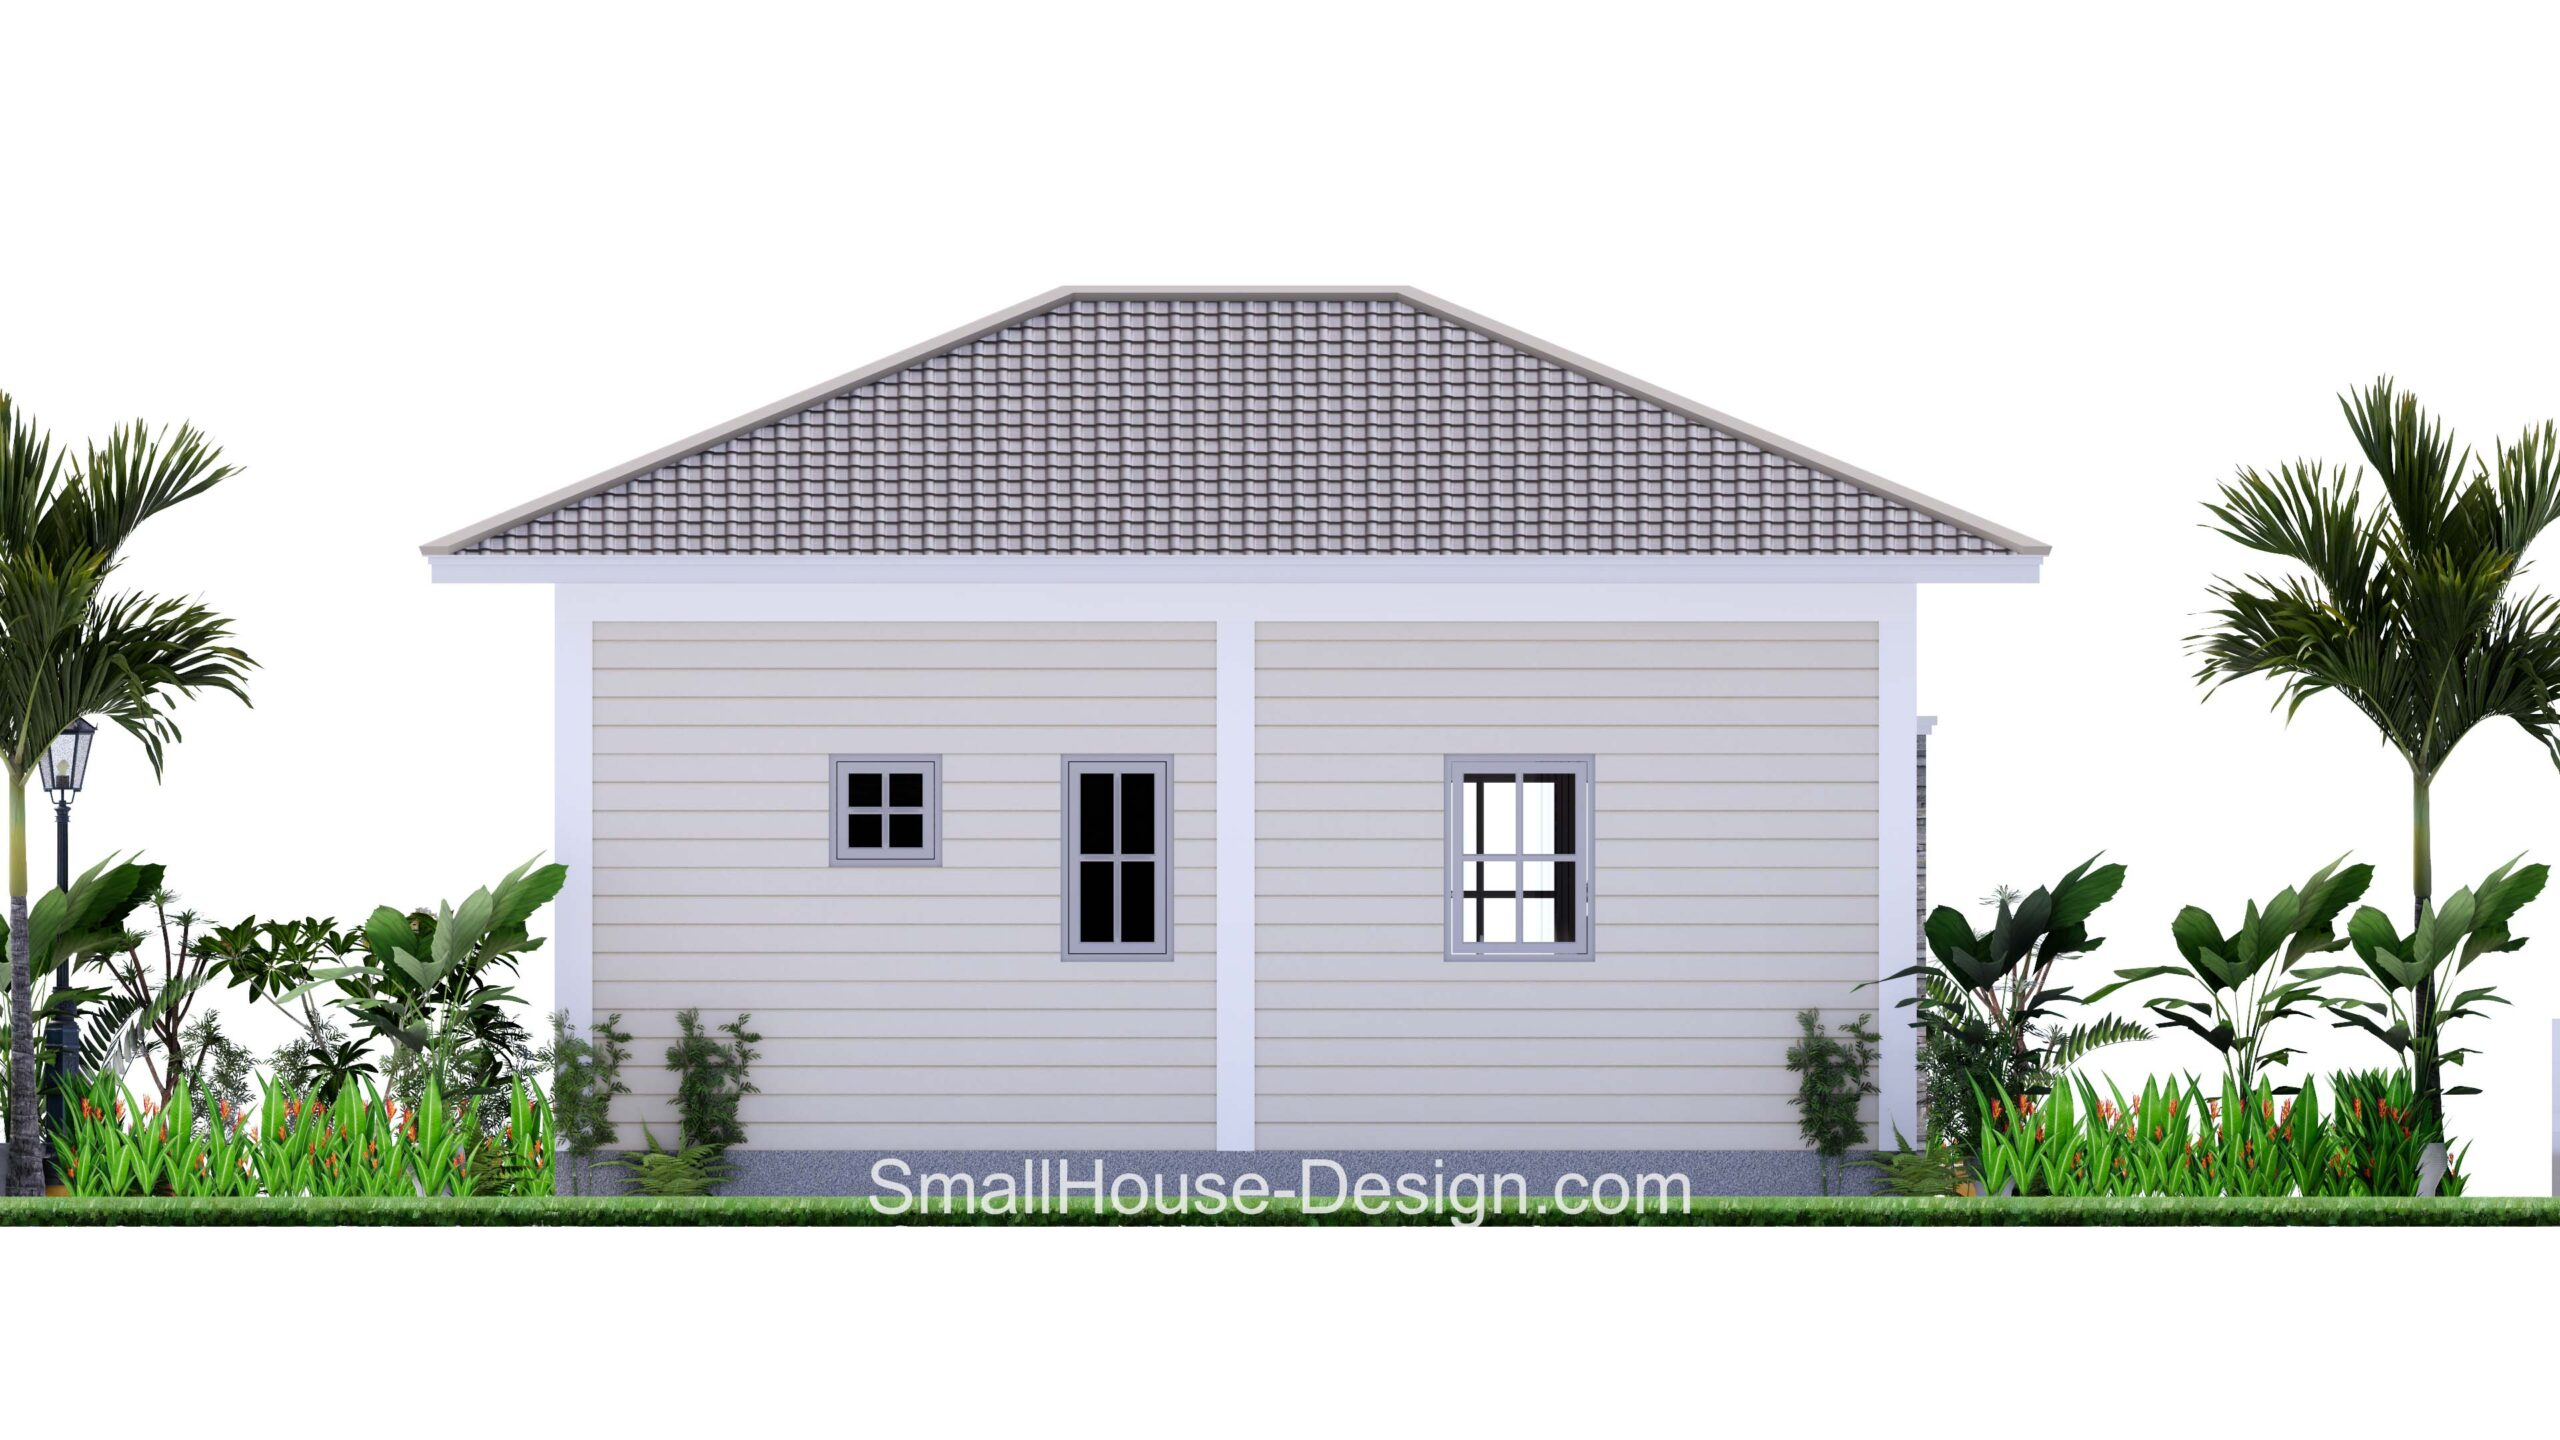 Small House Plan 7x6 Meters 1 Bed Hip Roof bACK